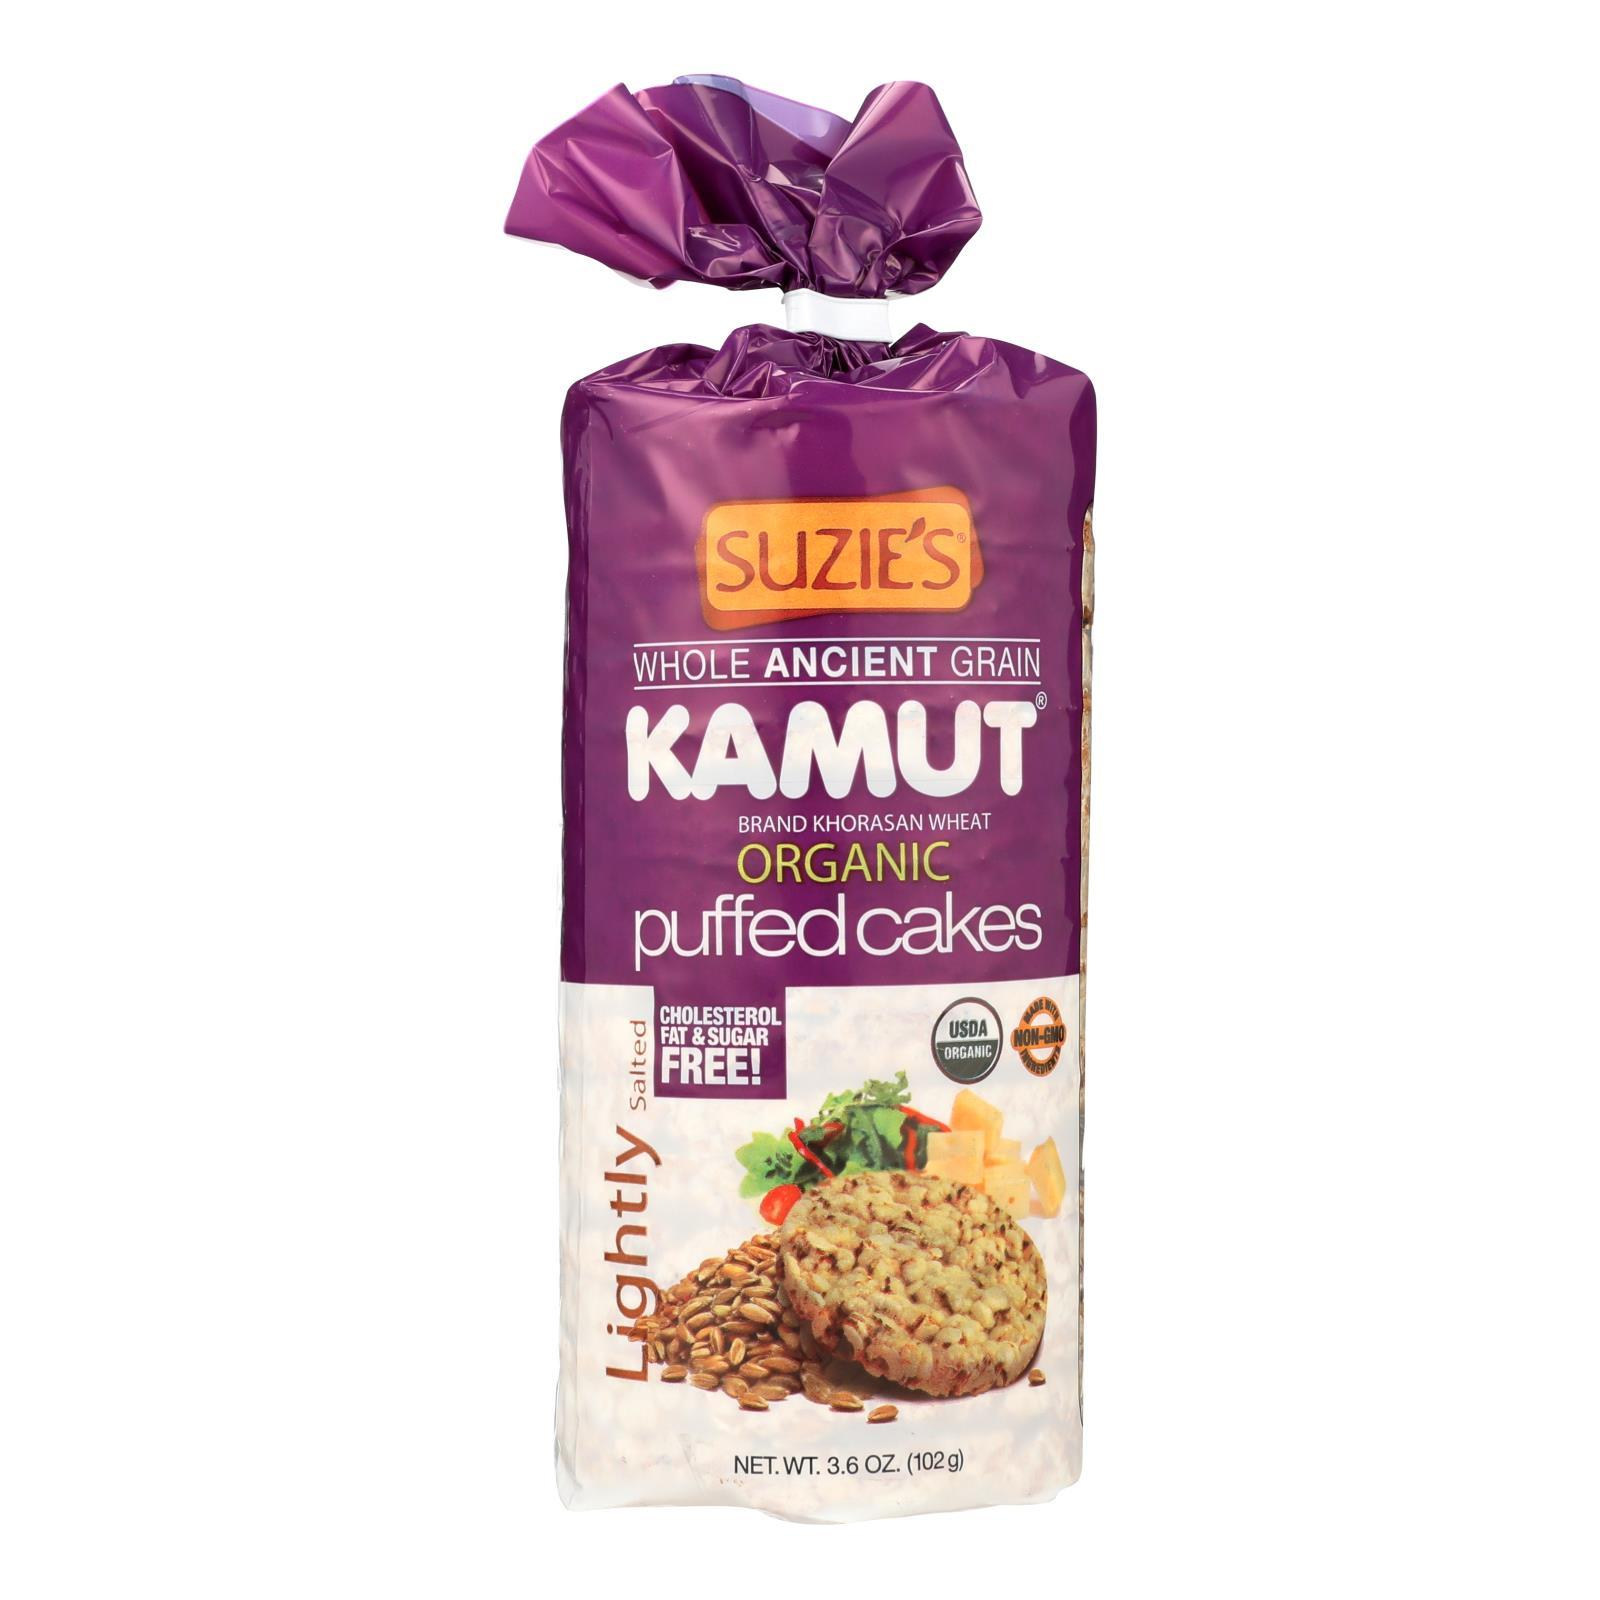 Suzie's Kamut Puffed Cakes - Lightly Salted - Case Of 12 - 3.6 Oz. - BeeGreen